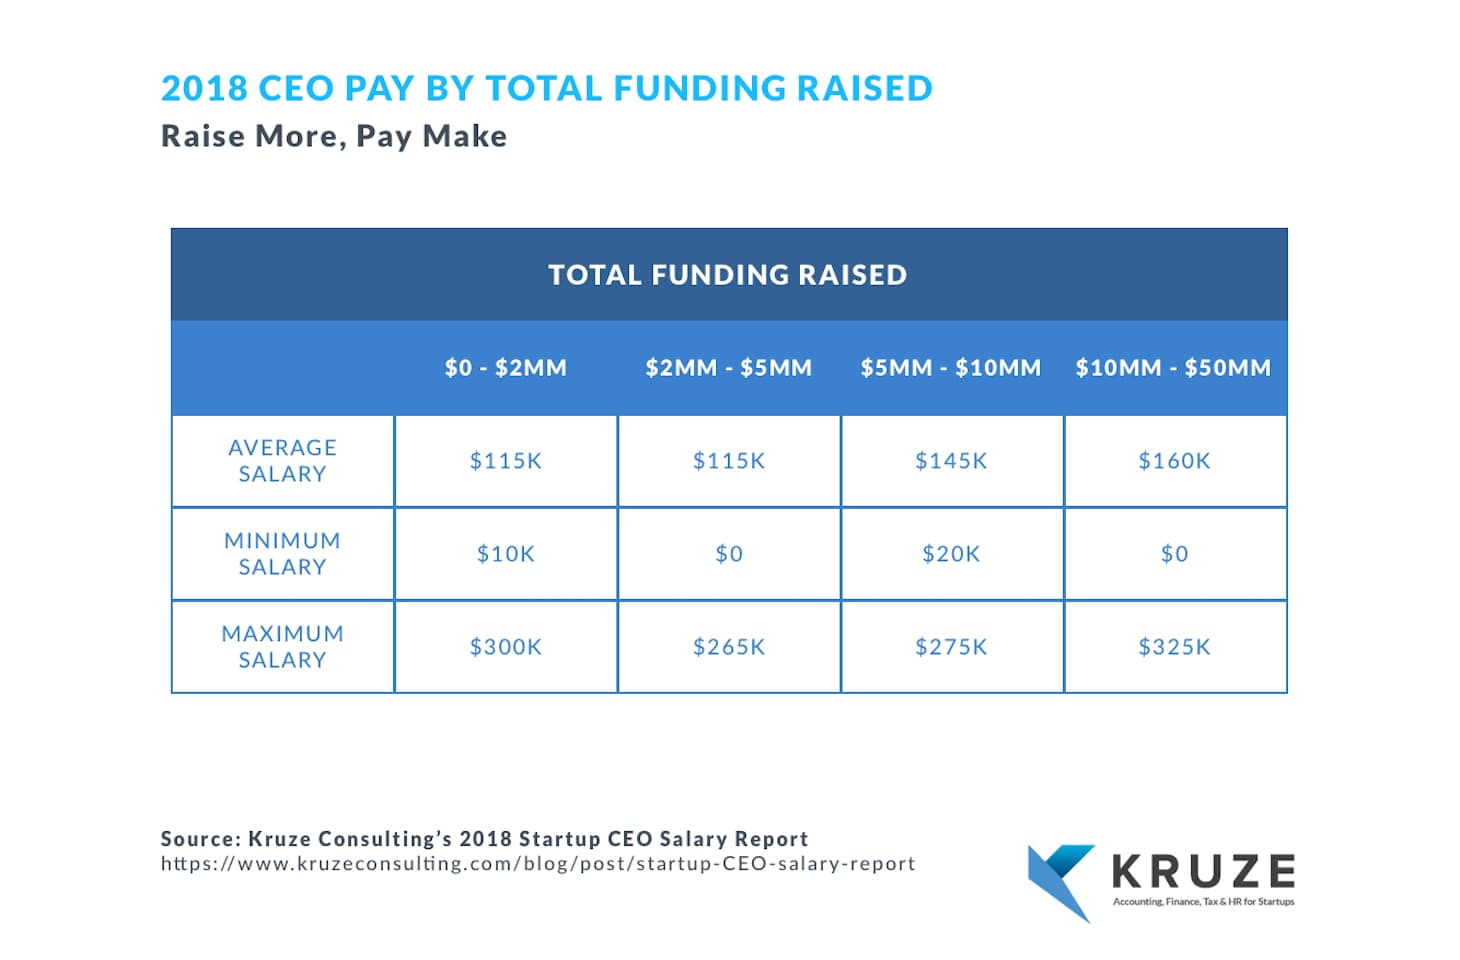 2018 ceo pay by total funding raised table